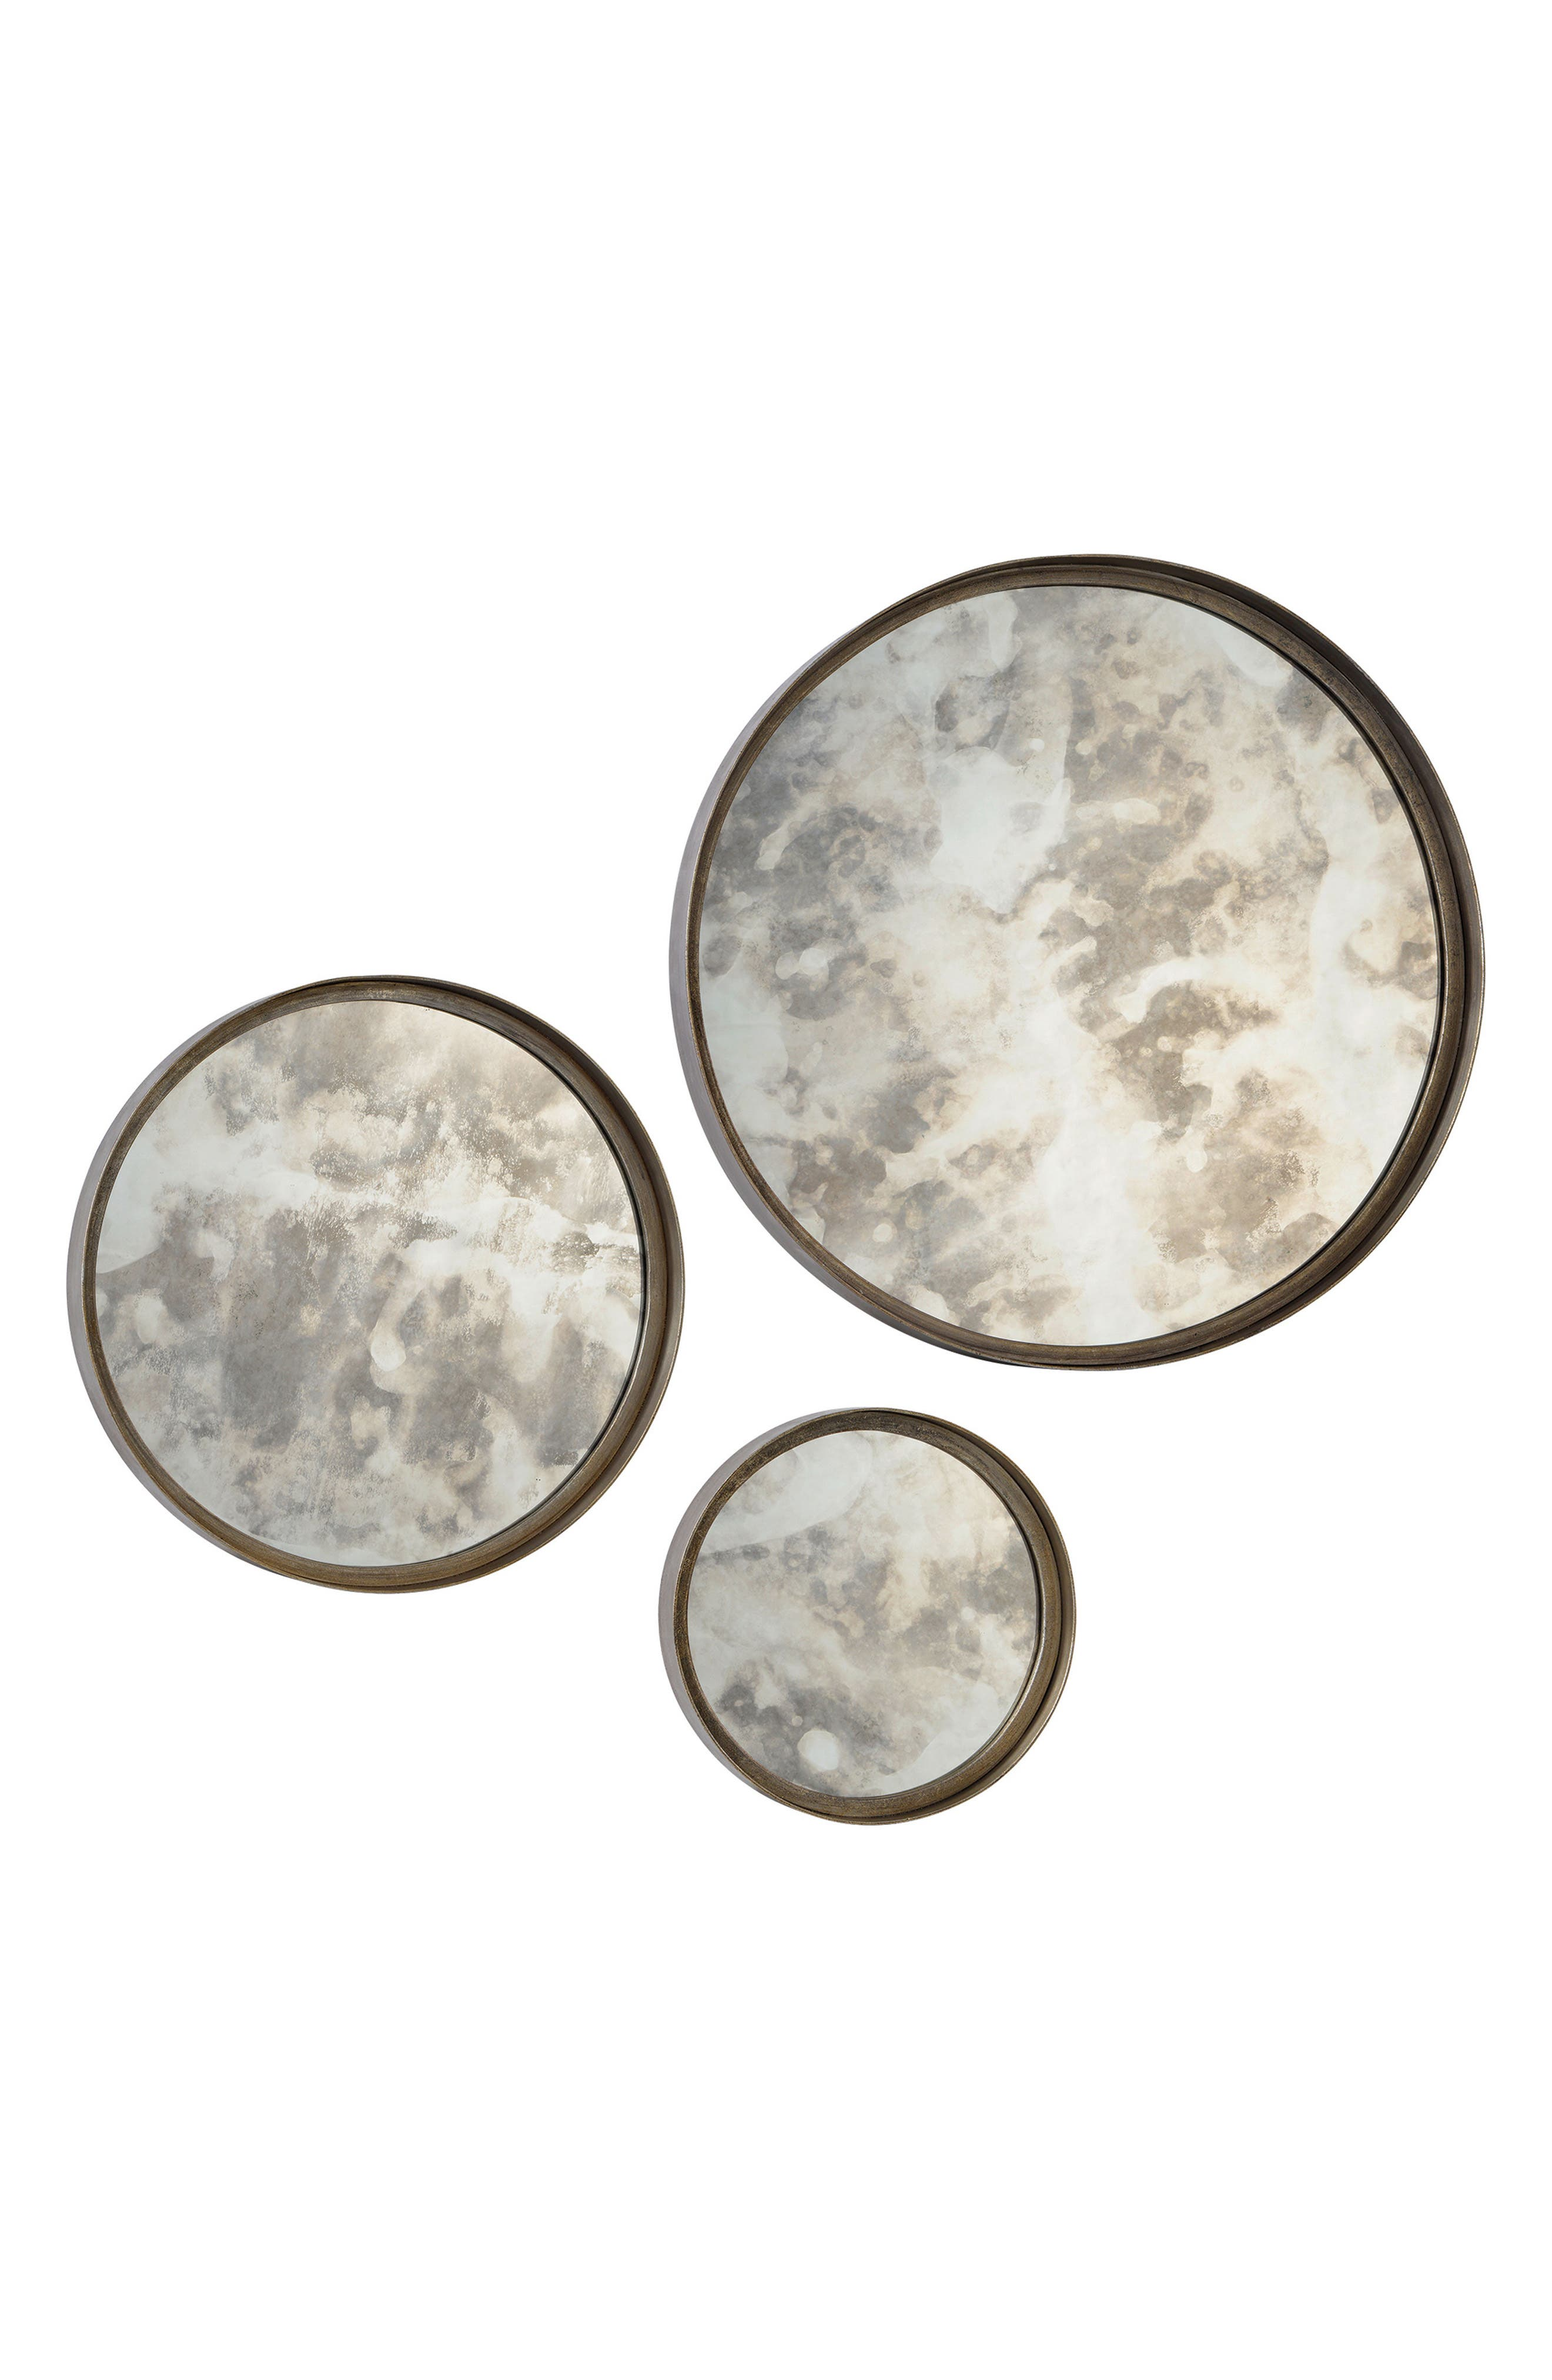 Renwil Shire Set of 3 Mirrors